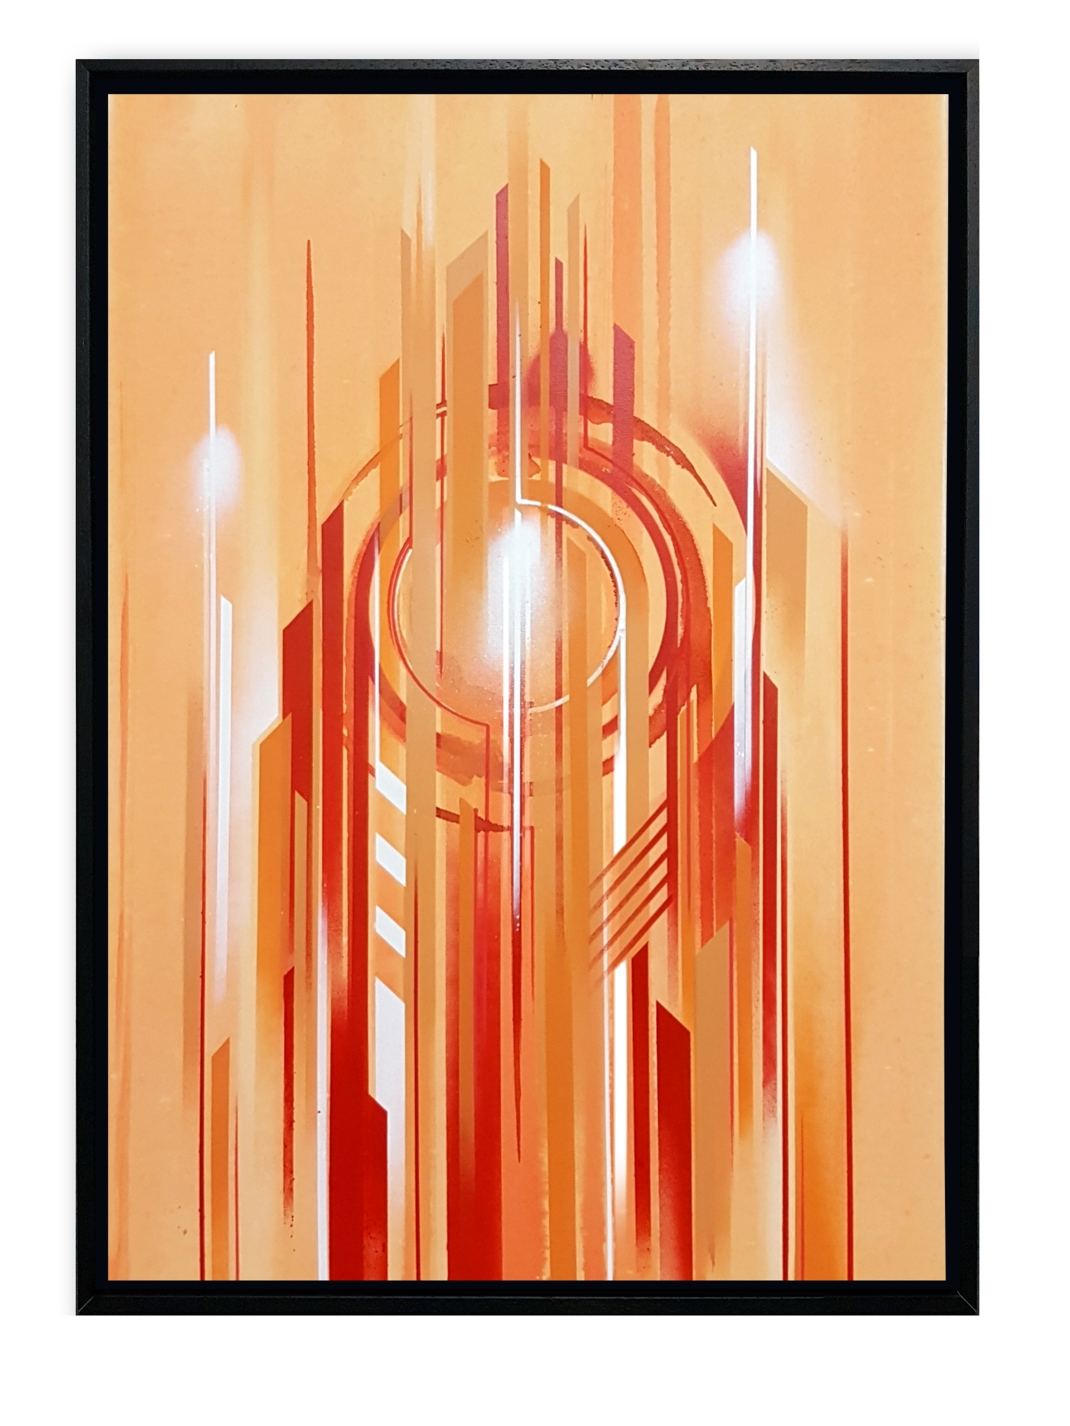 iazzu - interstellar orange Magaldi 50x70 2017